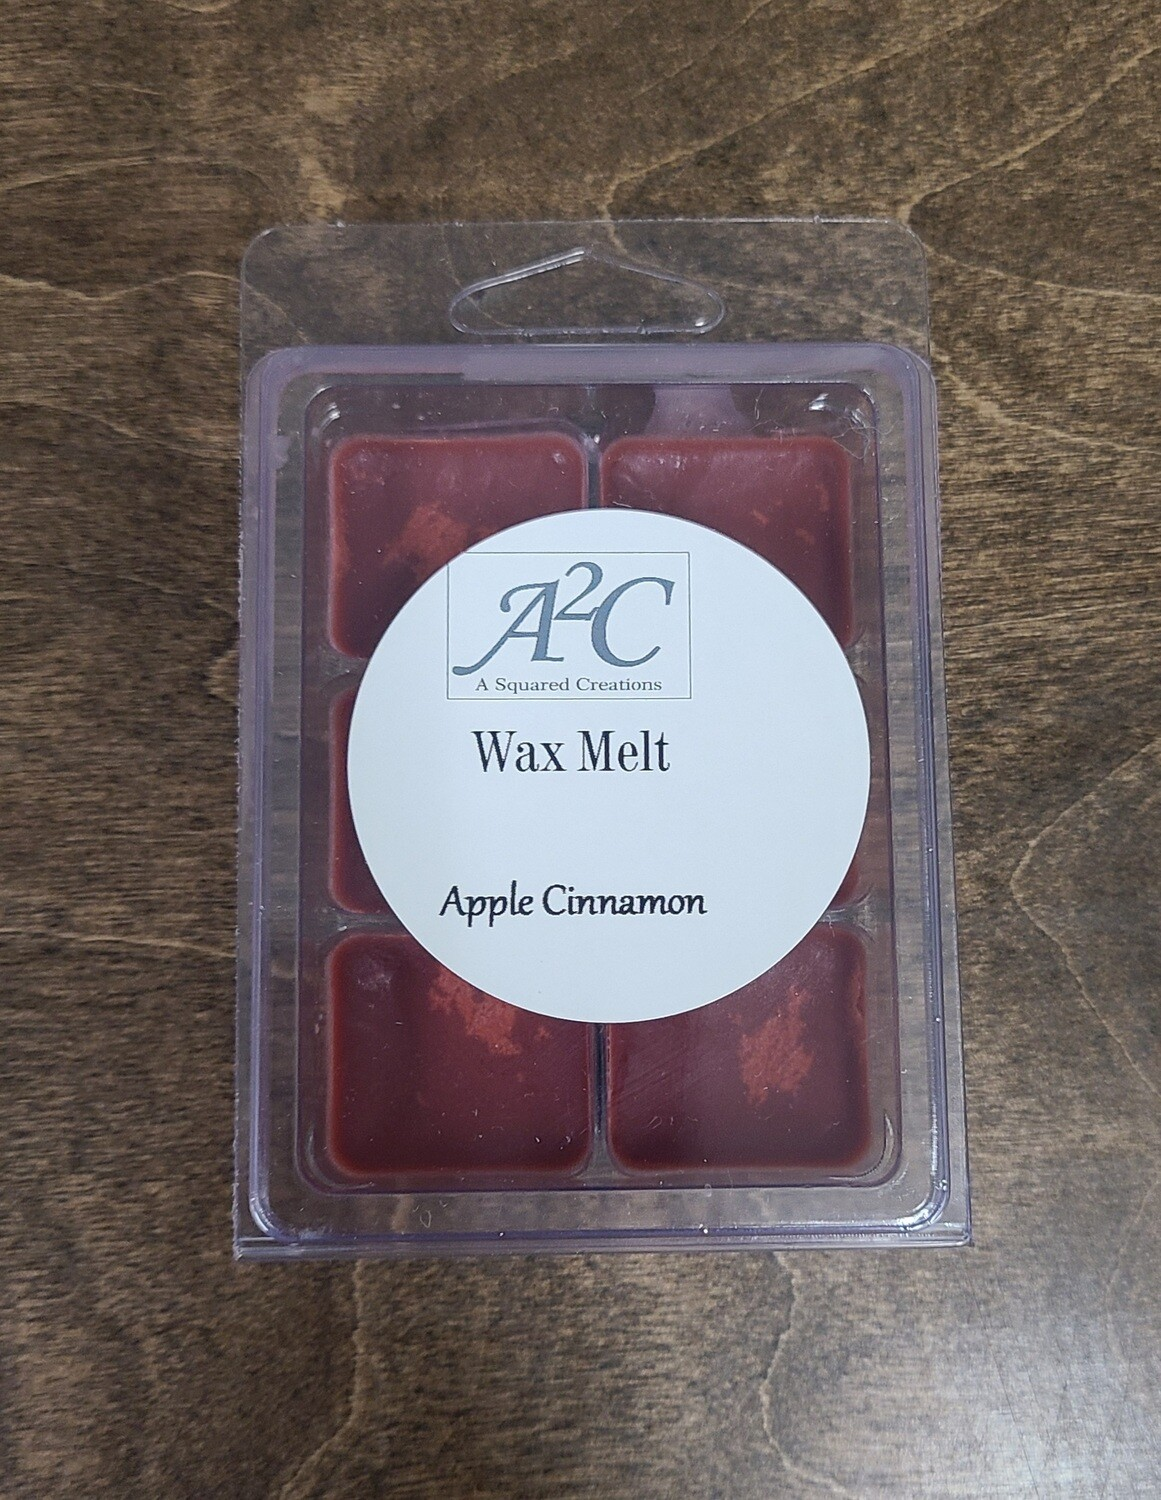 Wax Melt - Apple Cinnamon